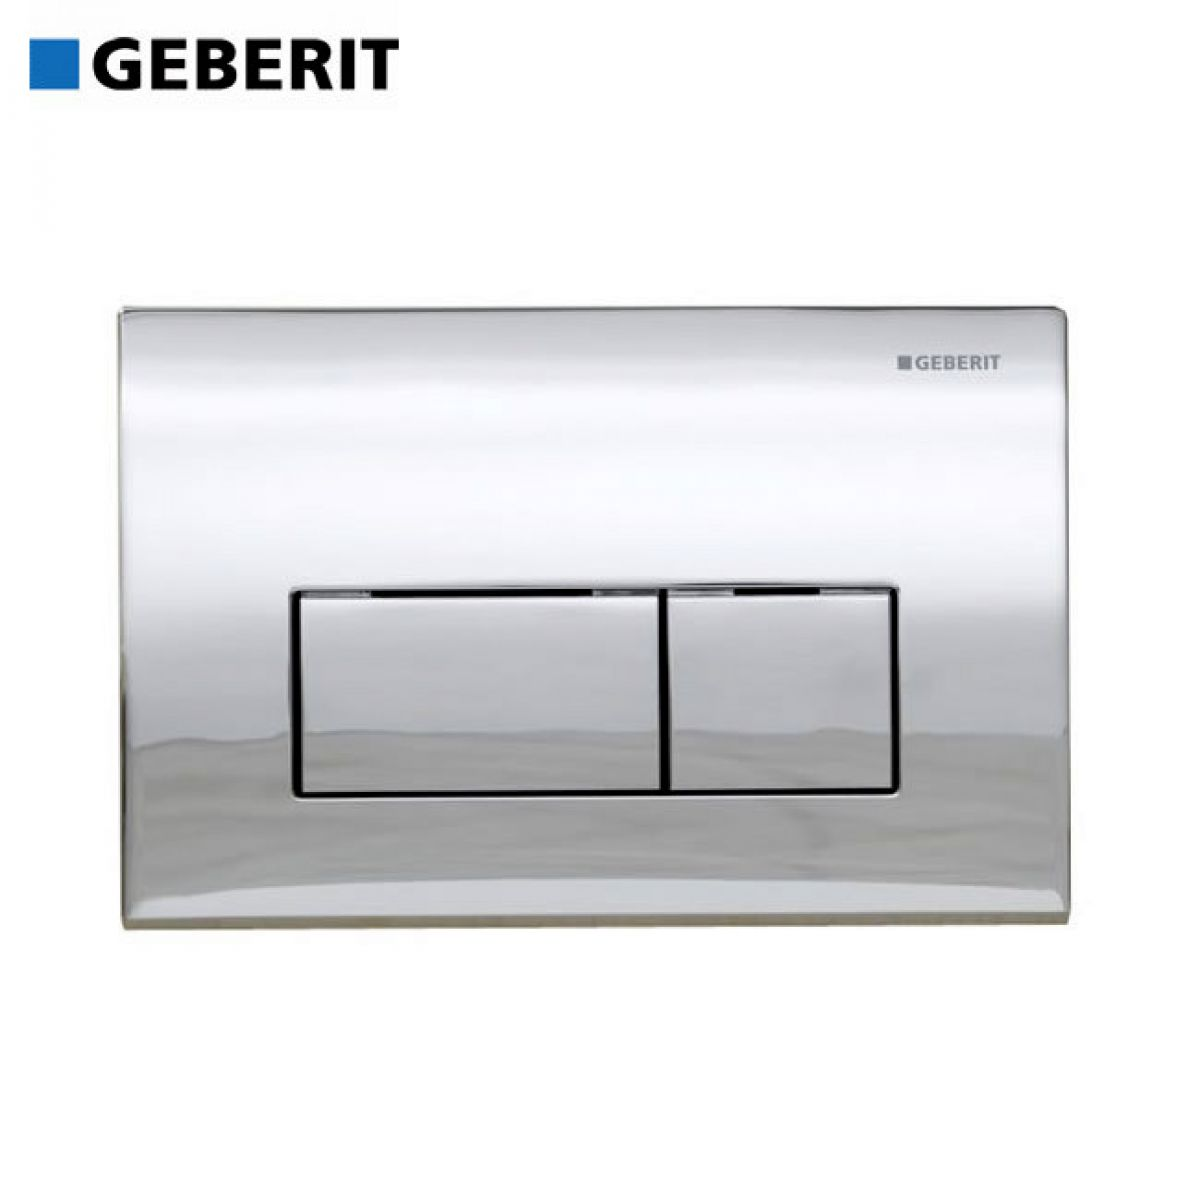 Geberit Kappa 50 Dual Flush Plate Uk Bathrooms